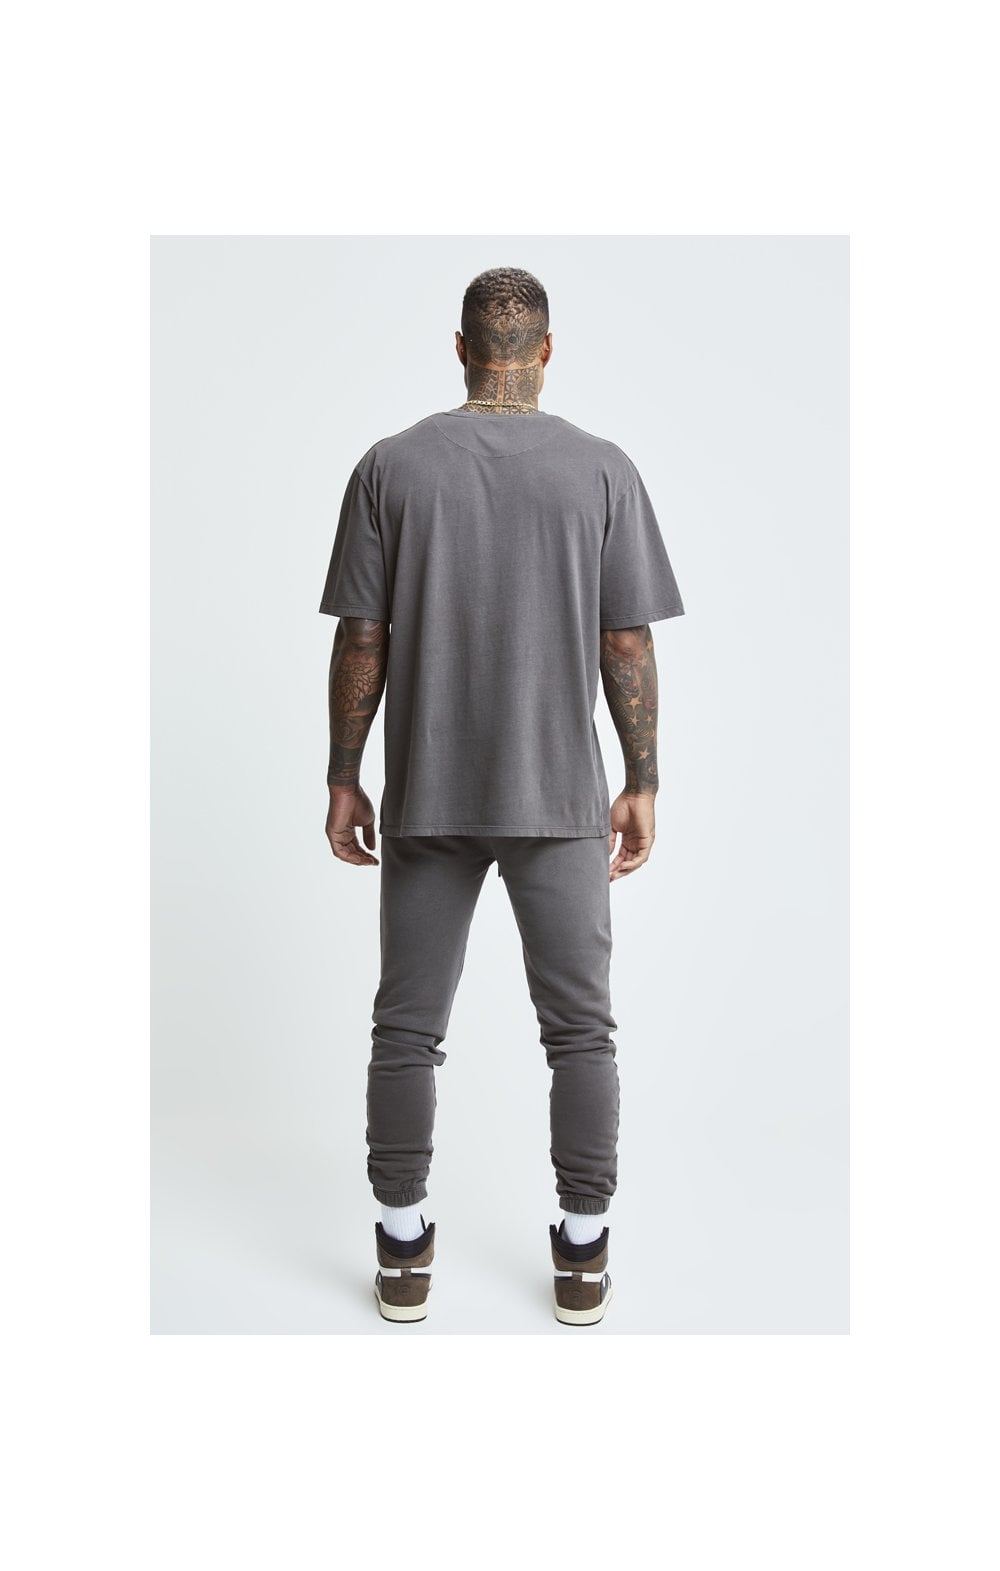 Load image into Gallery viewer, SikSilk X Steve Aoki Joggers - Washed Grey (7)